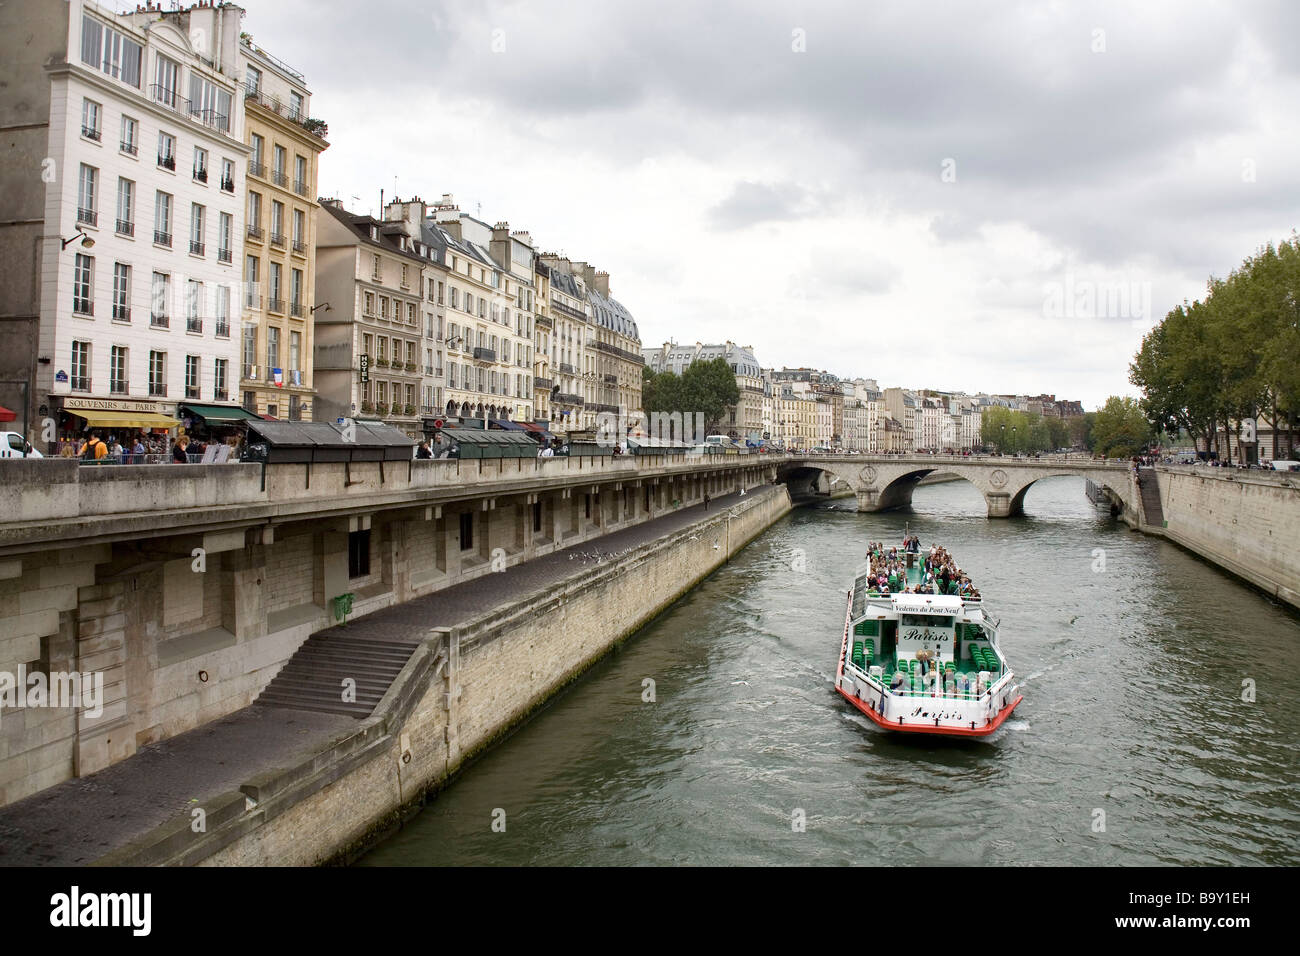 Tourist boat on the Seine river in Paris, France - Stock Image